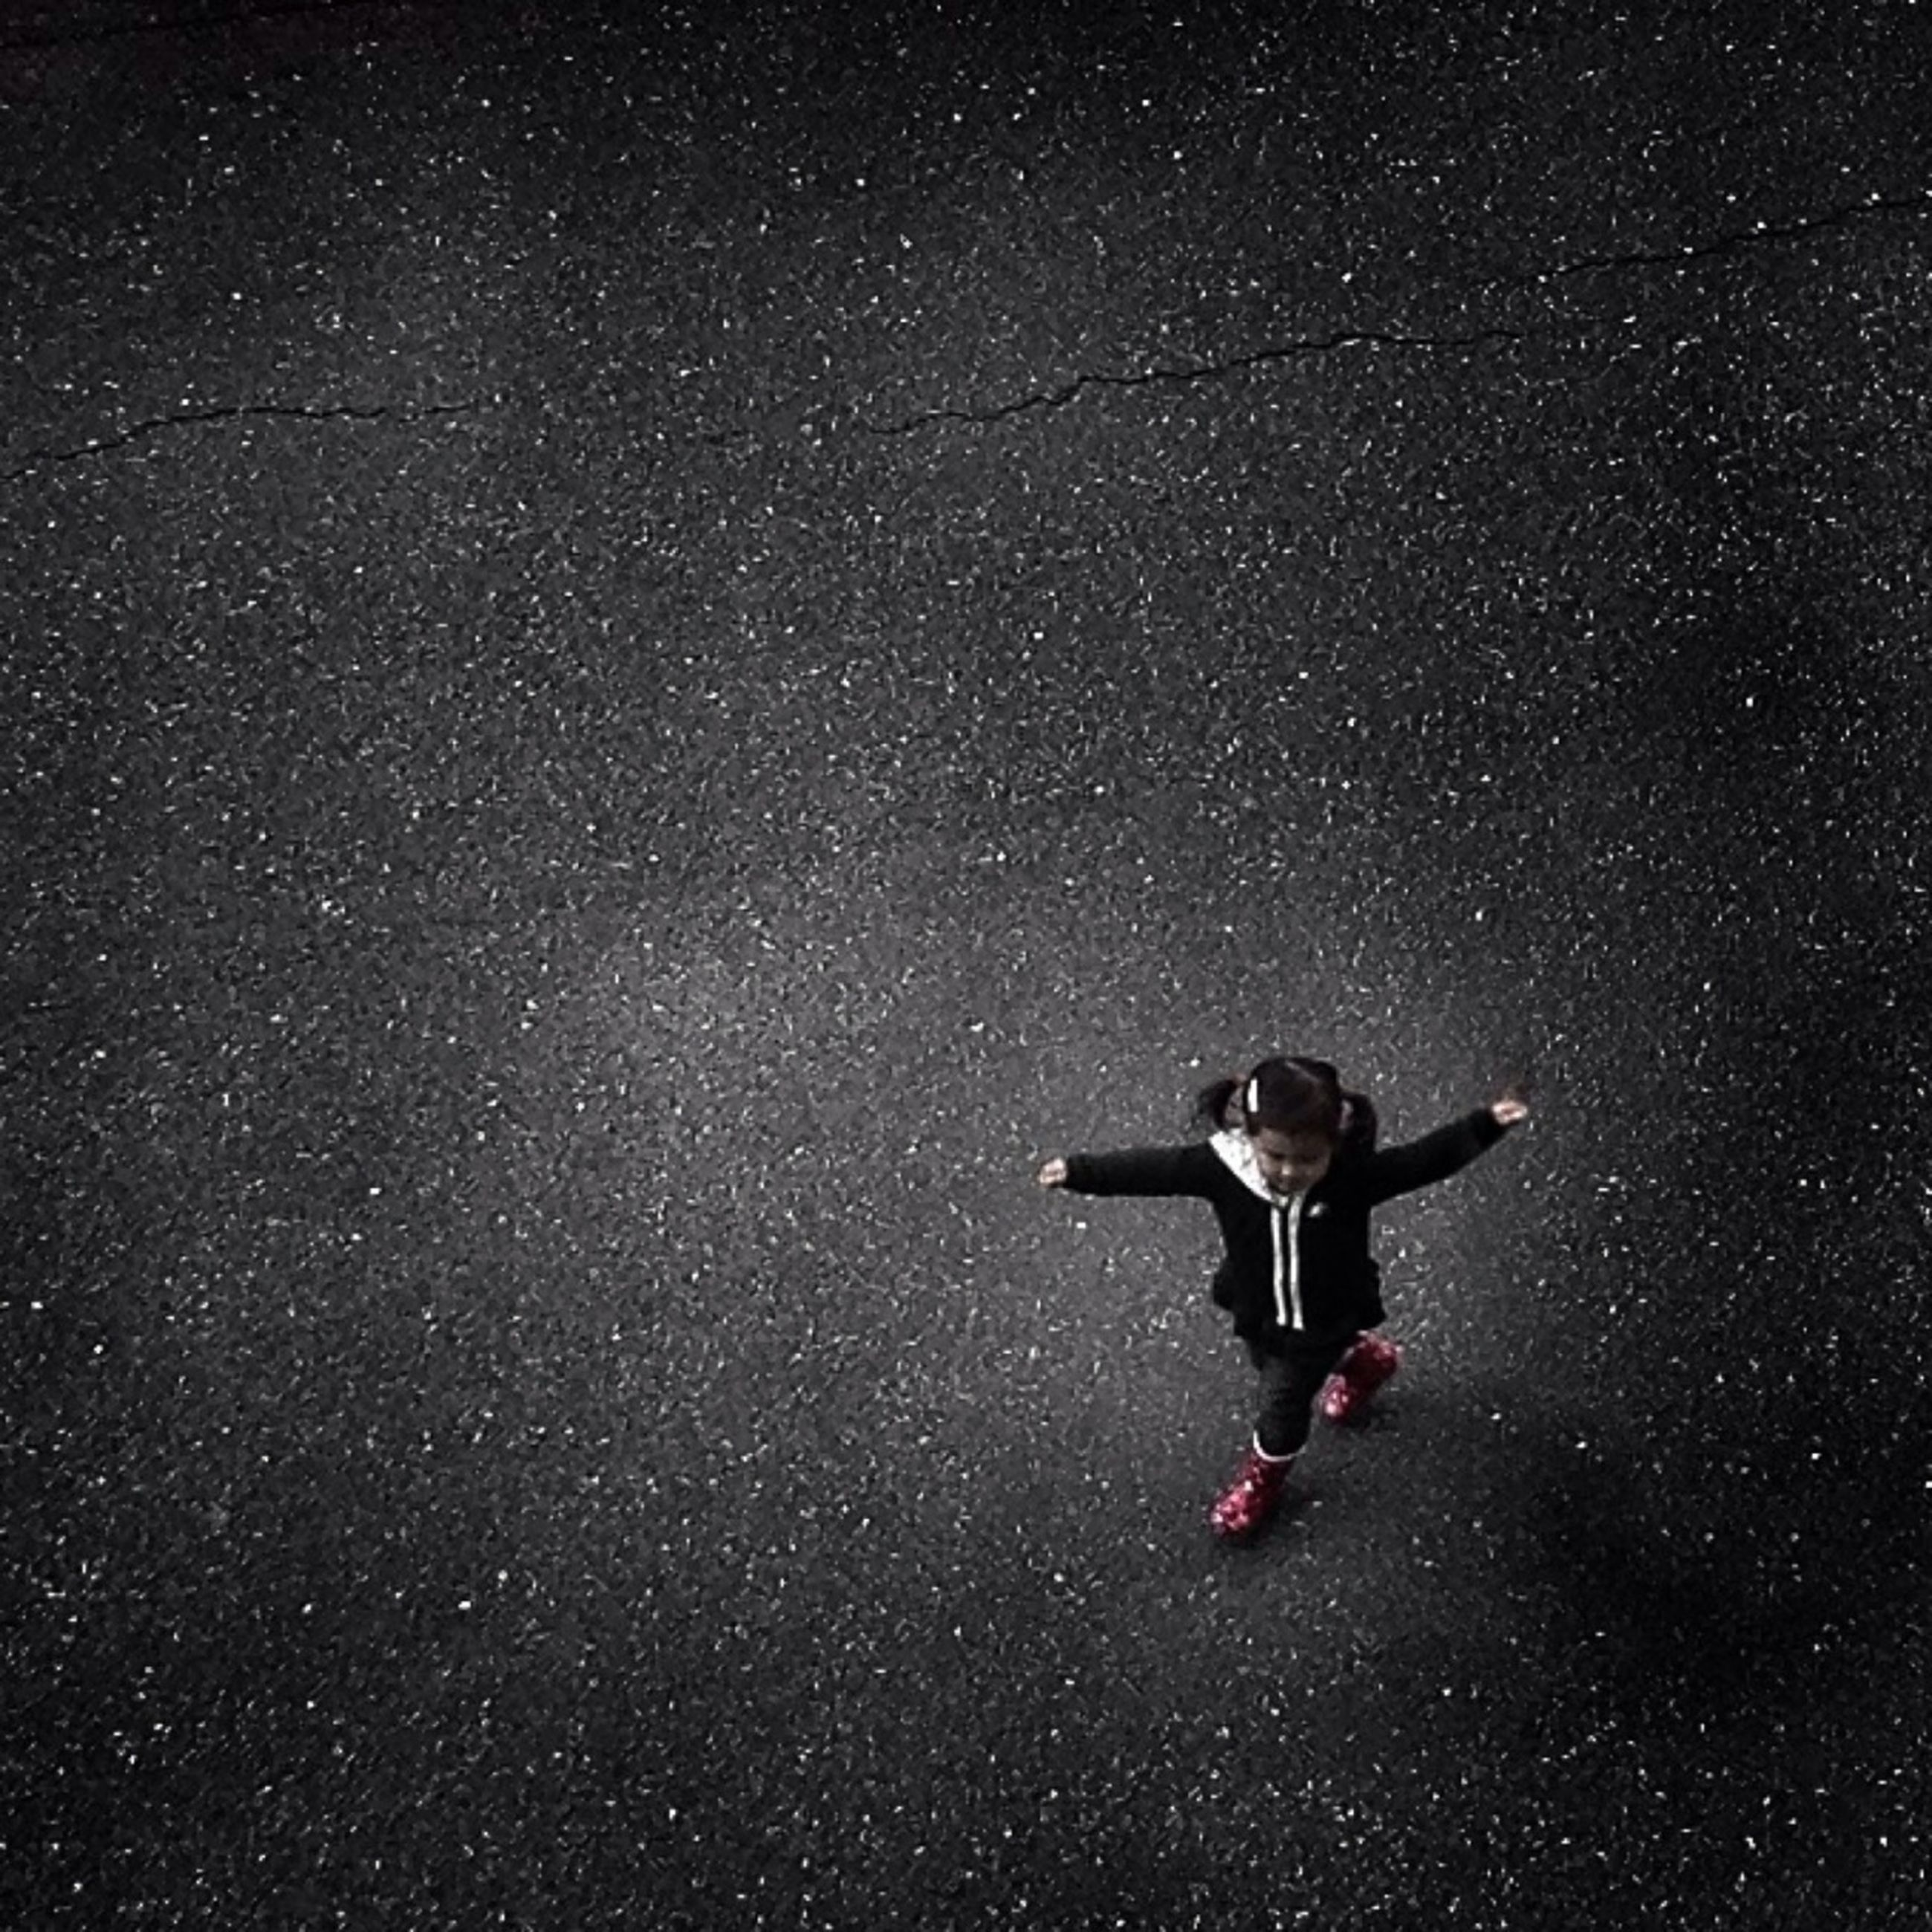 night, one person, sky, star field, mid-air, star - space, full length, weather, astronomy, low angle view, flying, tranquility, nature, transportation, outdoors, exploration, galaxy, beauty in nature, high angle view, motion